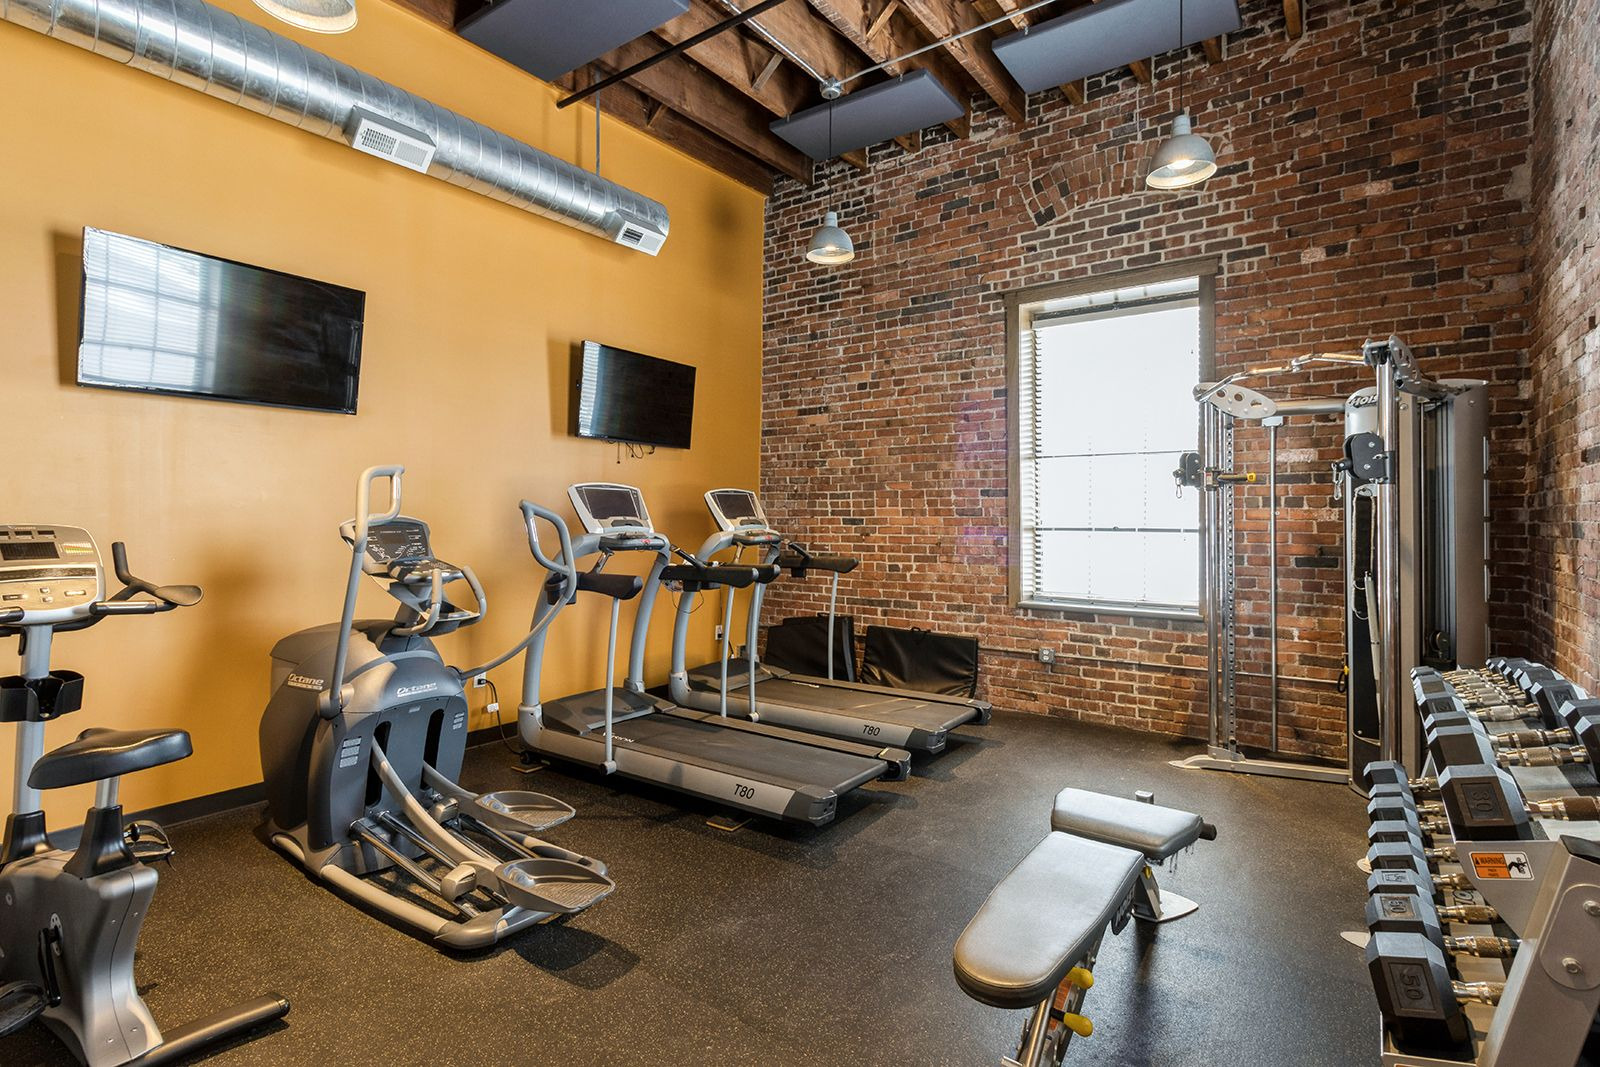 Our Community Amenities Include A Fitness Center Business Center And Rooftop Terrace With 360 Degree Views Of The Des Mo In 2021 Rooftop Terrace Home Decor Apartment